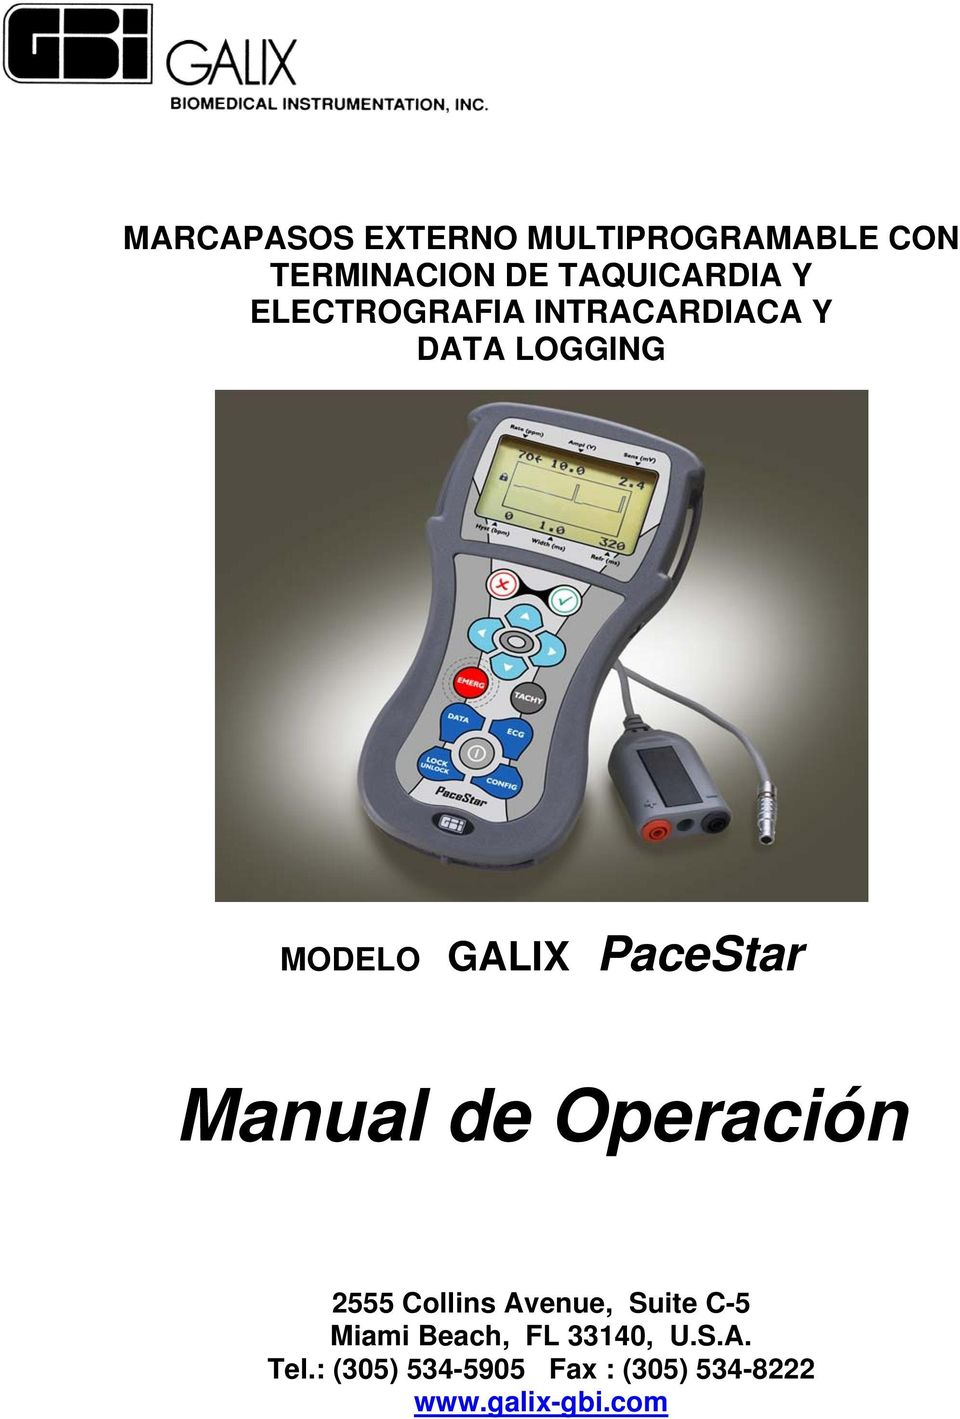 Manual de Operación 2555 Collins Avenue, Suite C-5 Miami Beach, FL